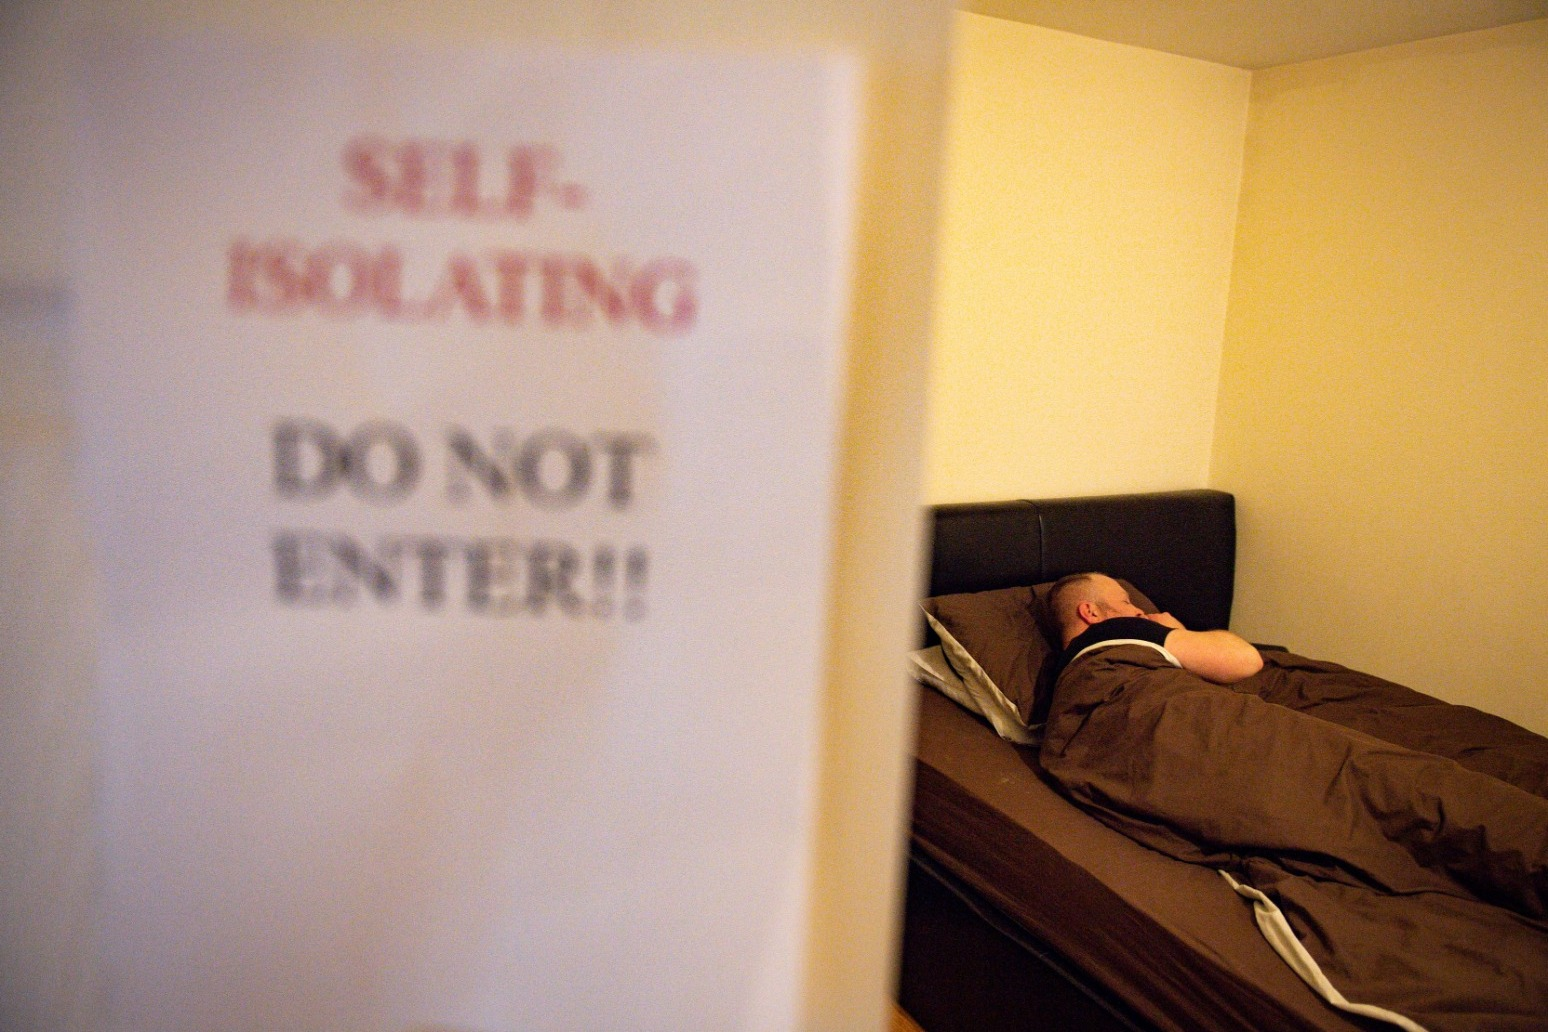 Few people self-isolate with Covid symptoms or order a test - study